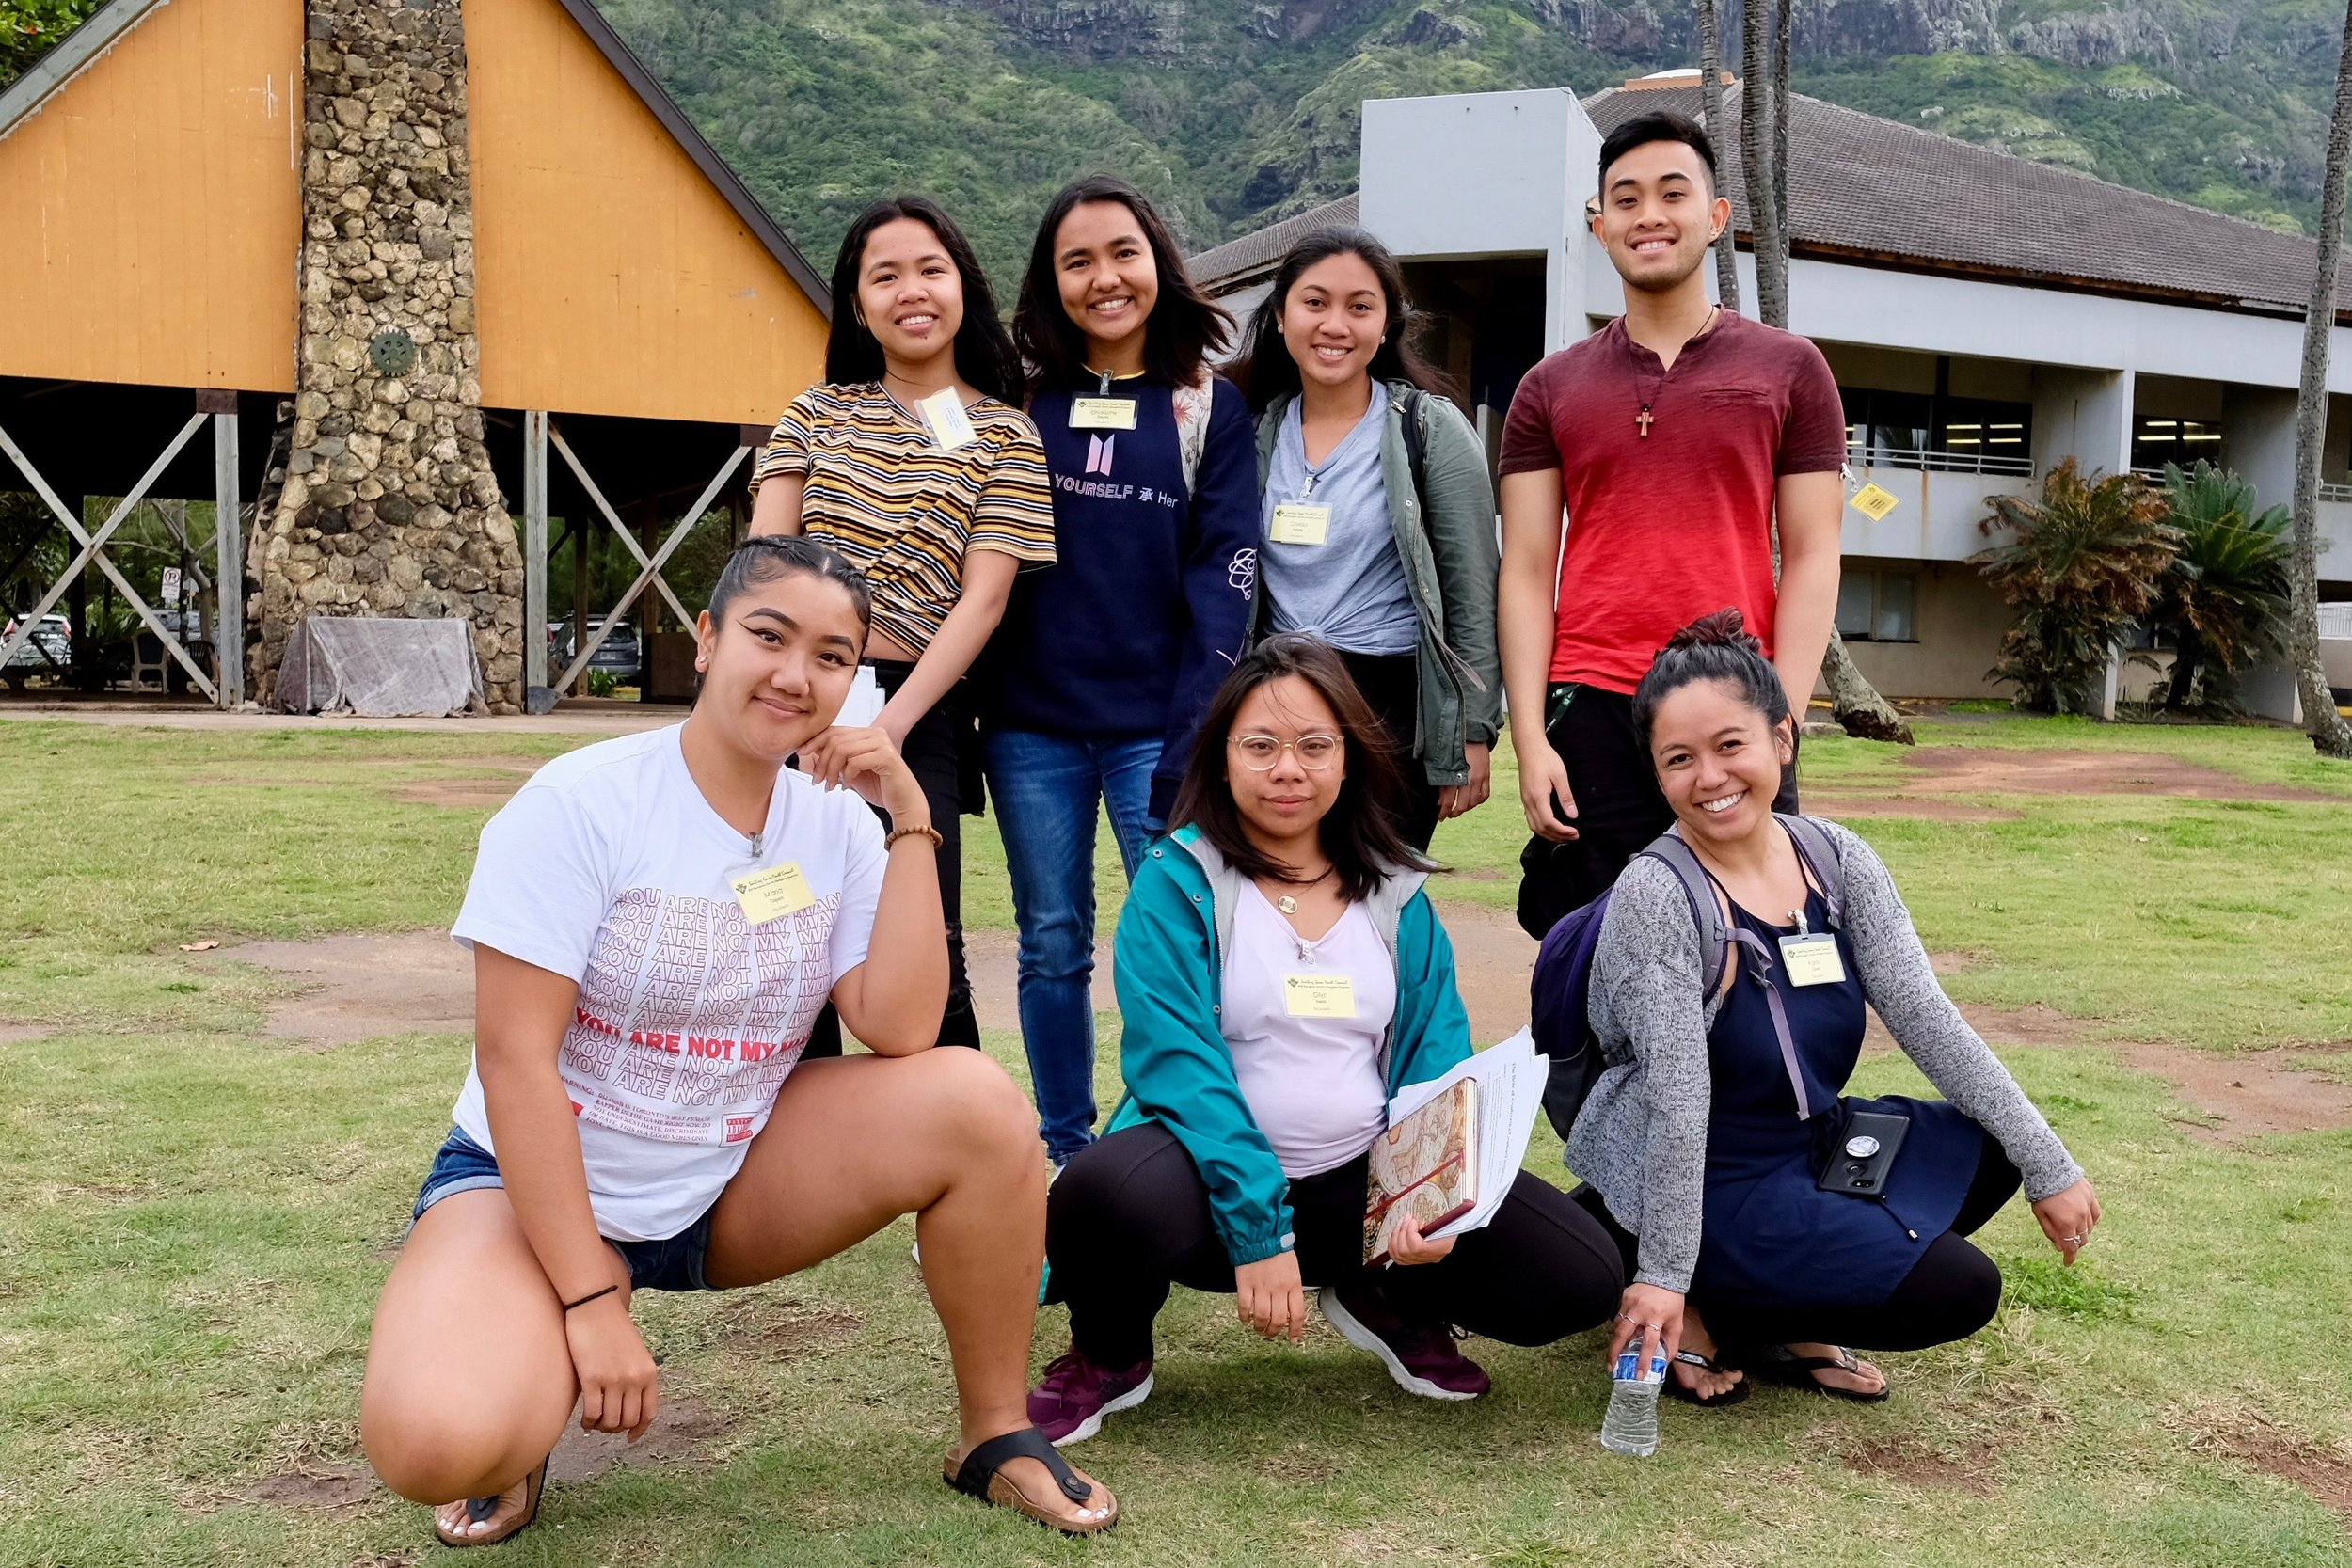 From L-R, front row: Maria Toquero, Glyn Narca, Karla Villanueva Danan. Back row: Hilary Naluz, Charlotte Faye Esquida of Big Island, Chelsa Gonong of Big Island, and Kristian Pacpaco. Photo by J. Austria.